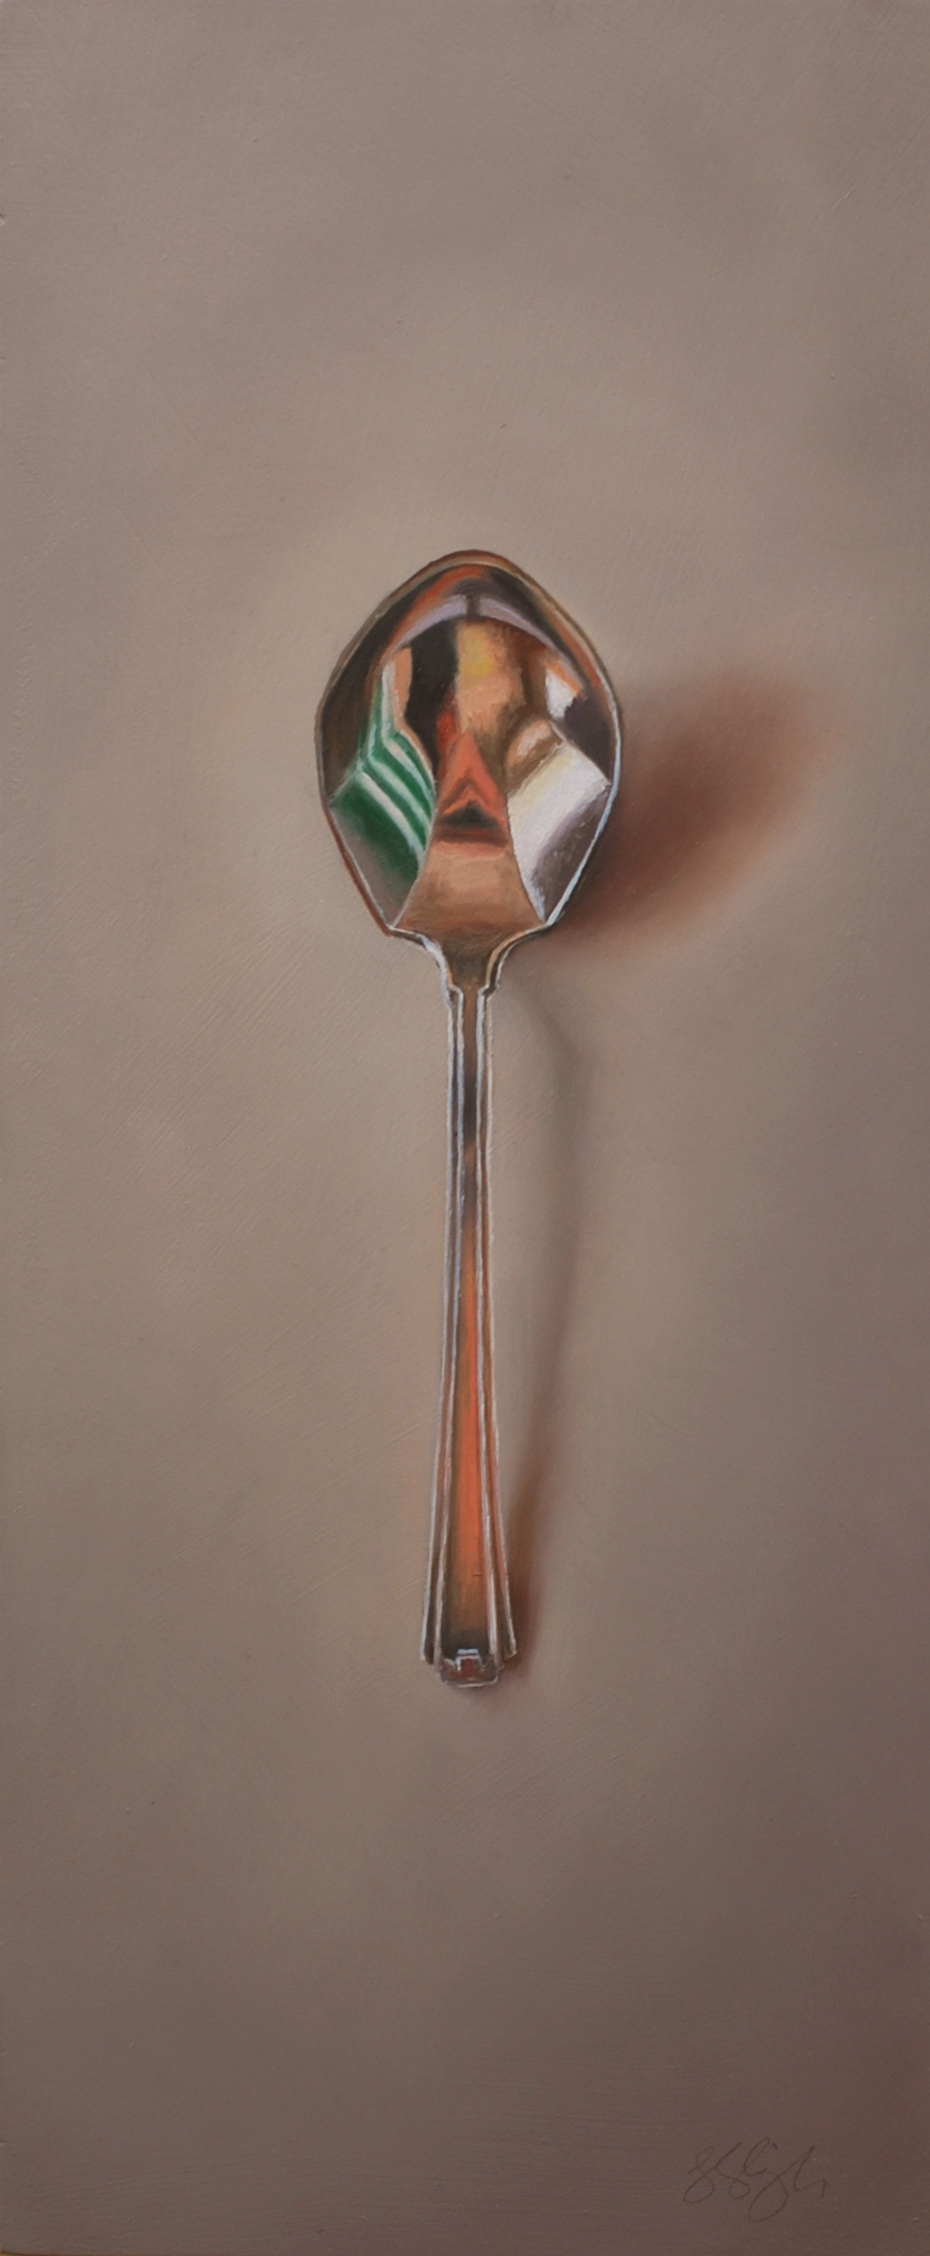 "Silver Spoon #59, The Volunteer  Oil on panel, 2014. 12x5"" Private collection"